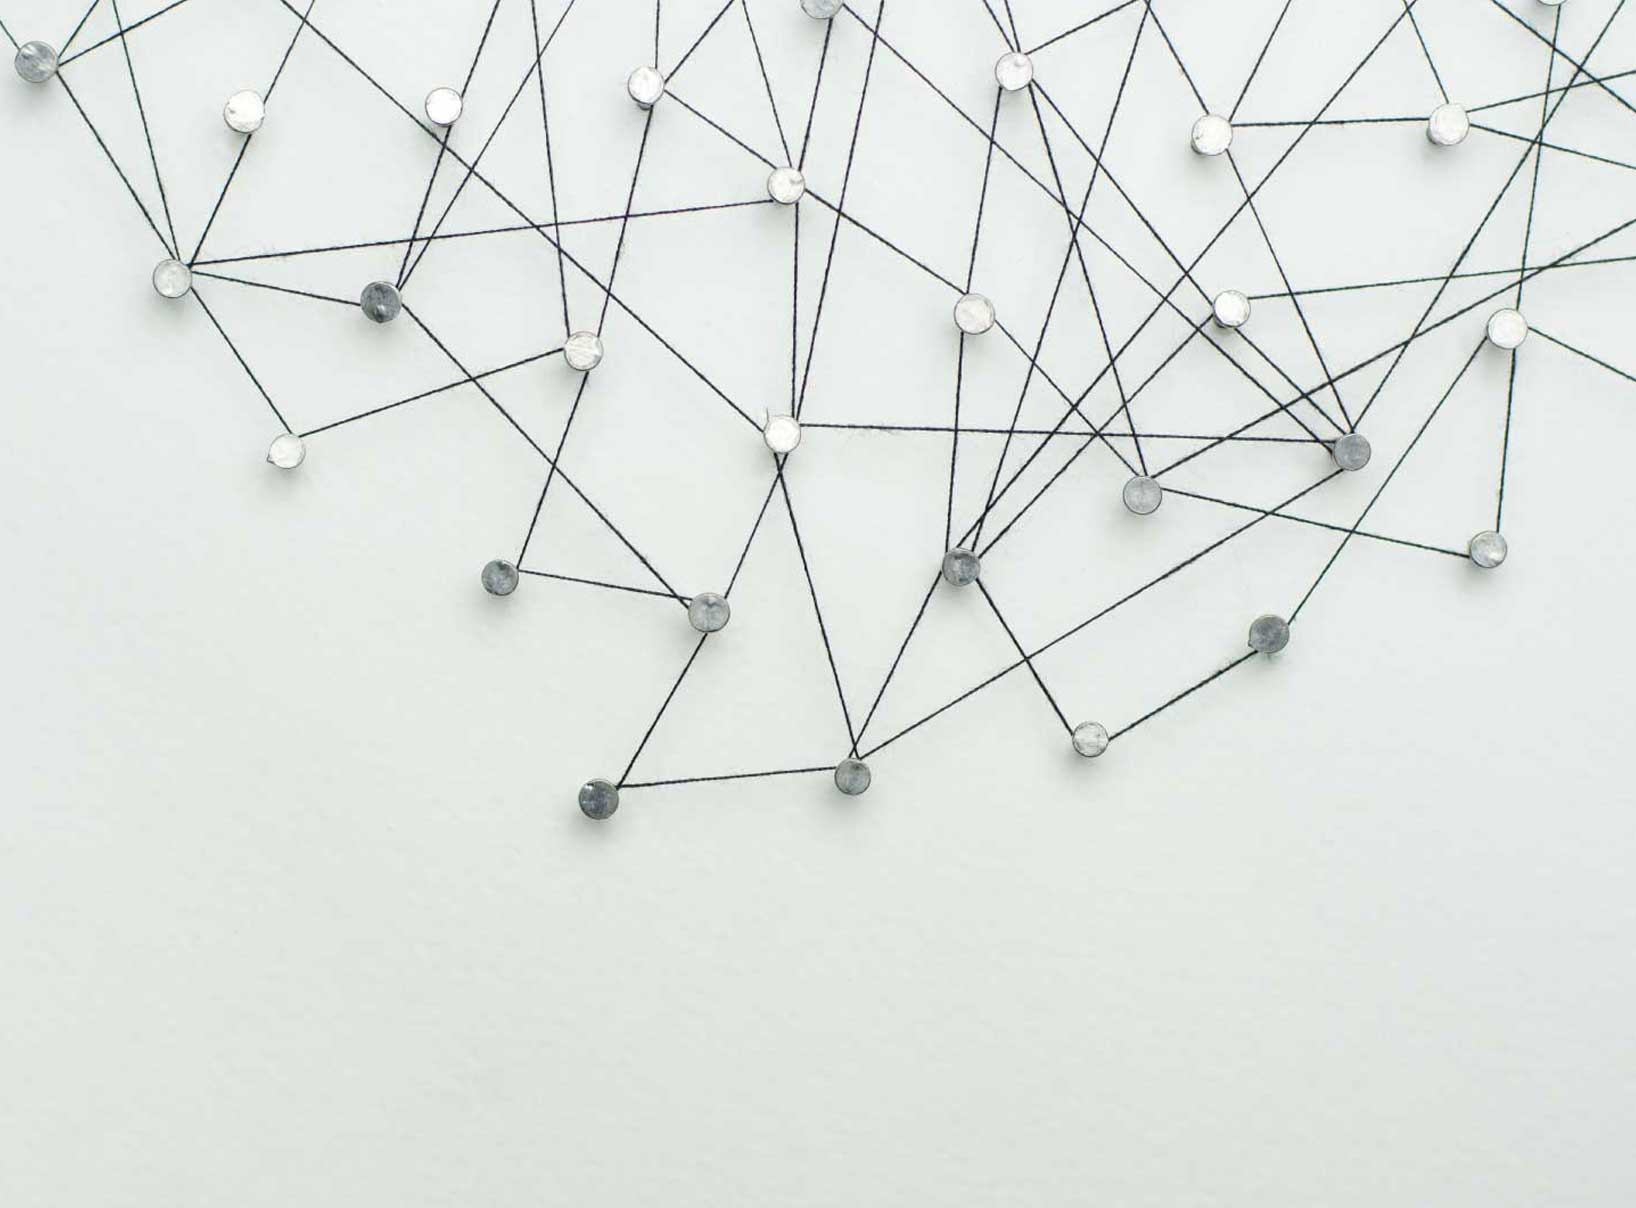 photo of many nails on white background with thread connecting all of them